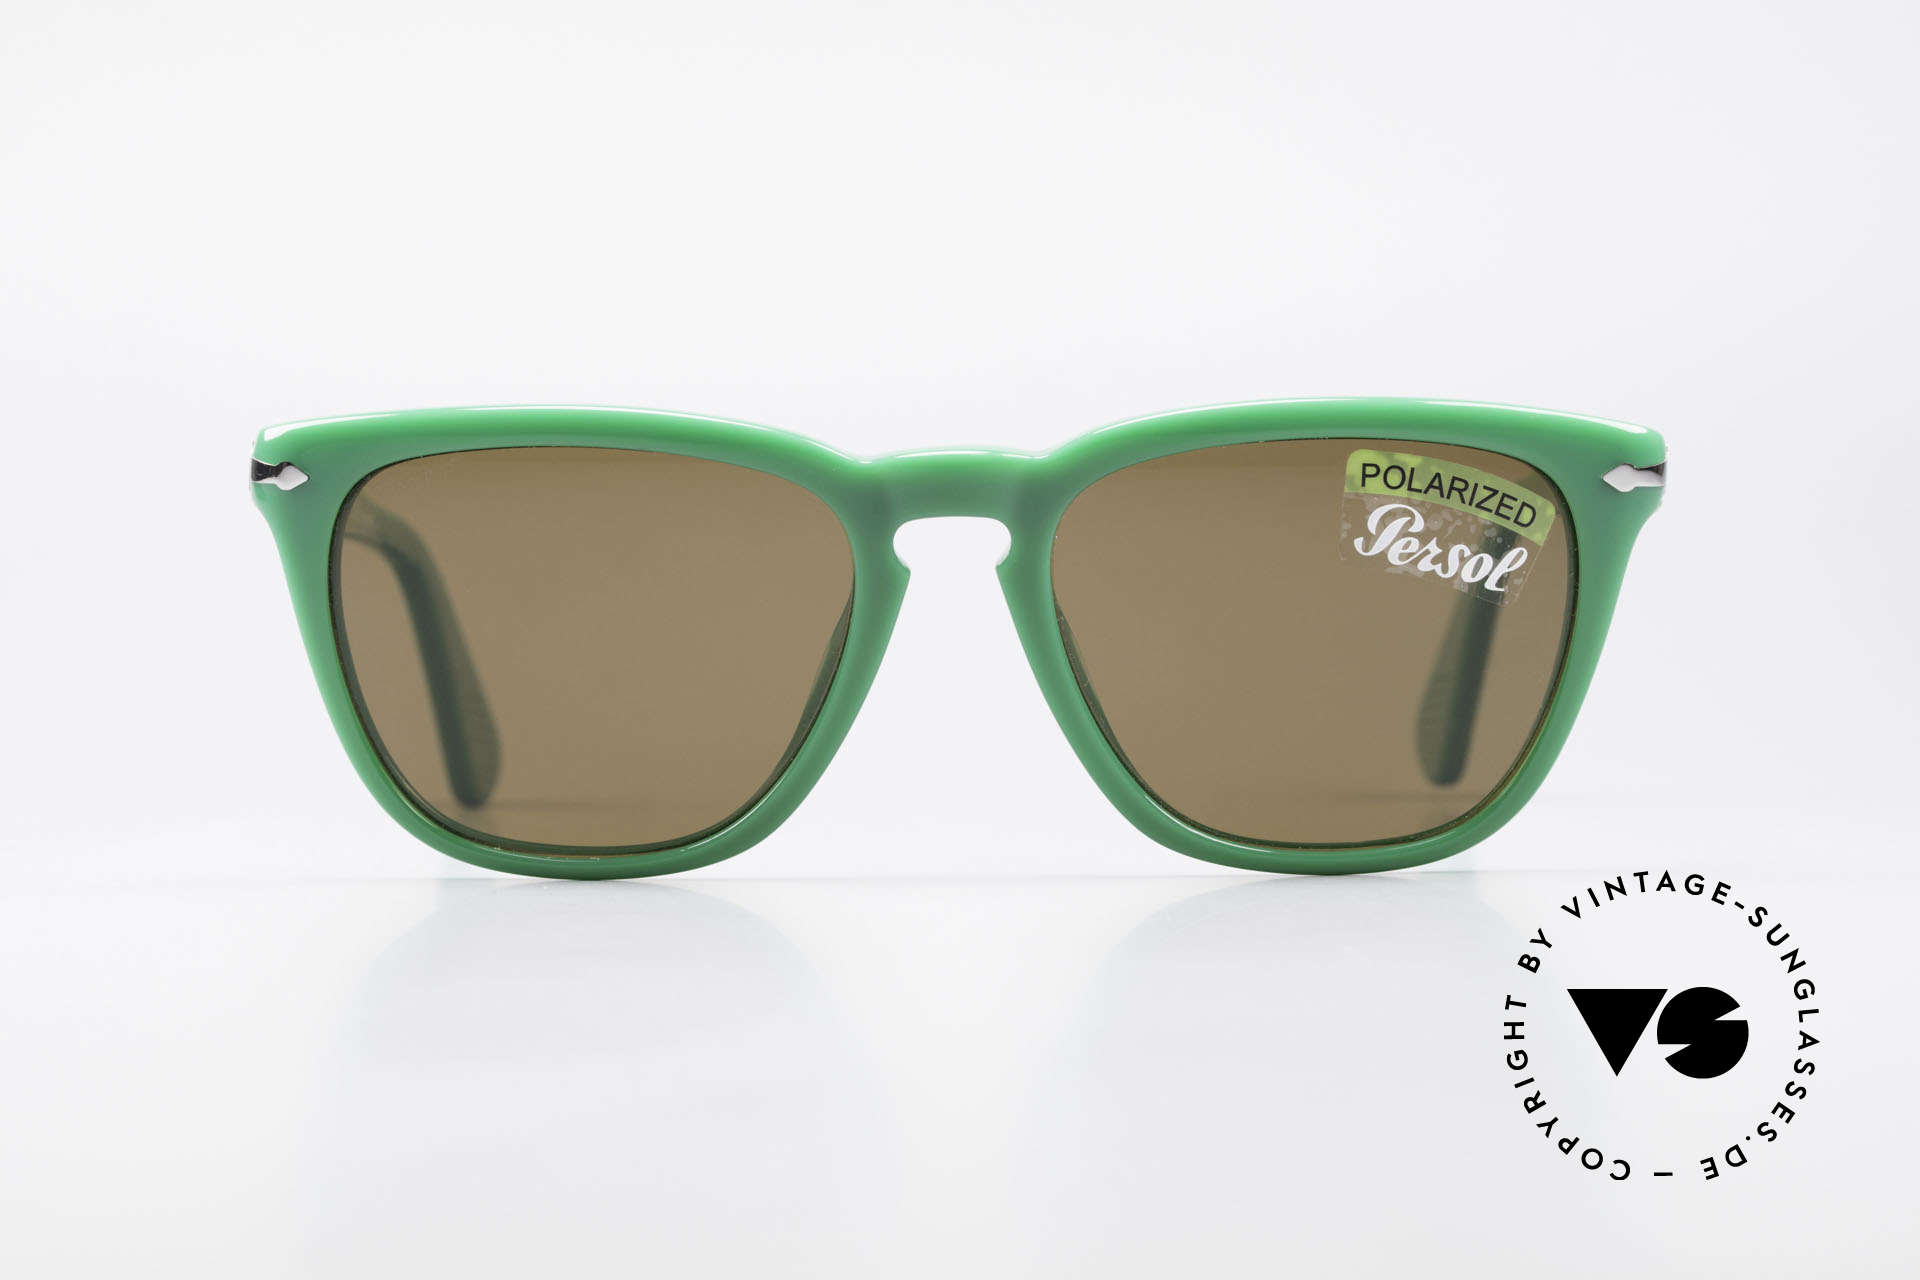 Persol 3024 Classic Sunglasses Polarized, classic timeless design and best craftsmanship, Made for Men and Women